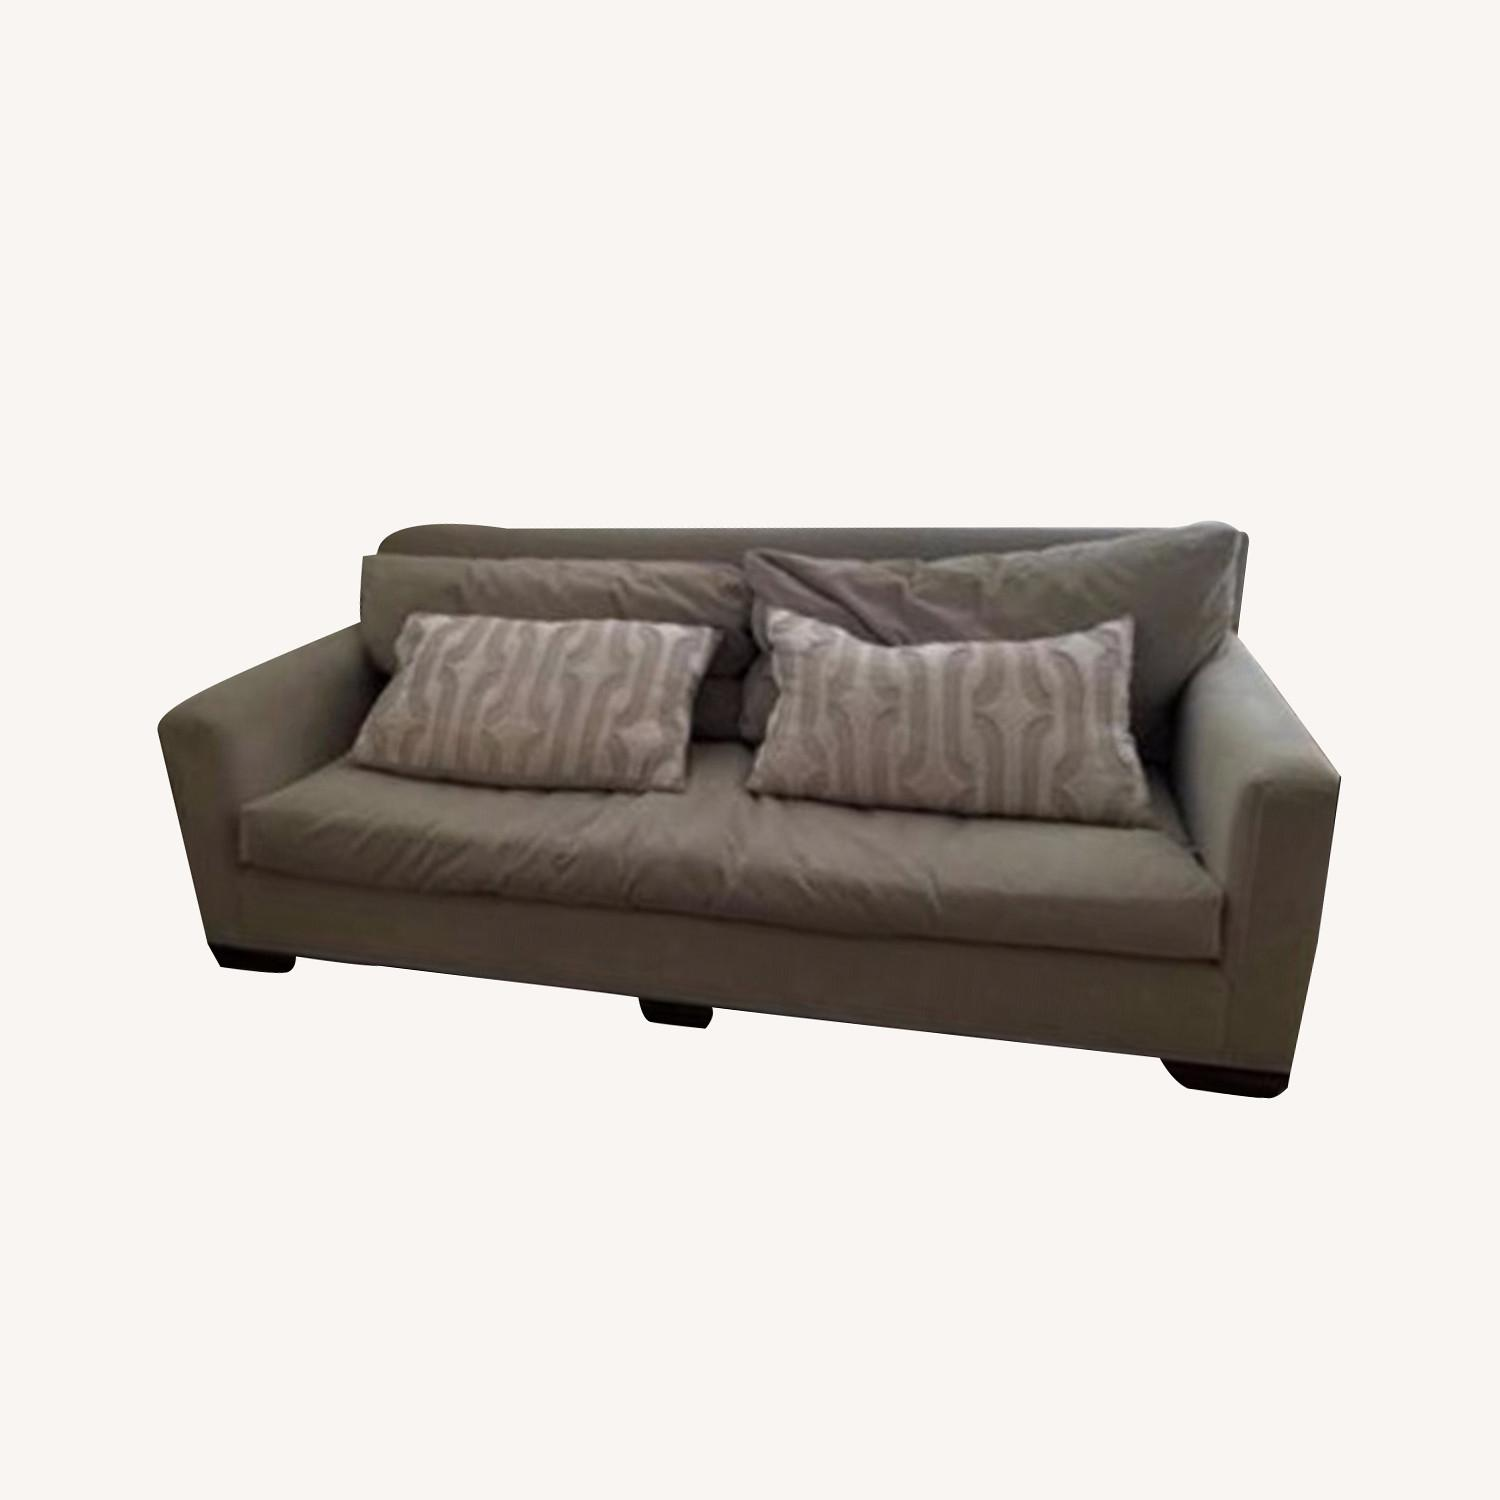 Taylor Made Custom Grey Couch w Wood Legs. - image-0